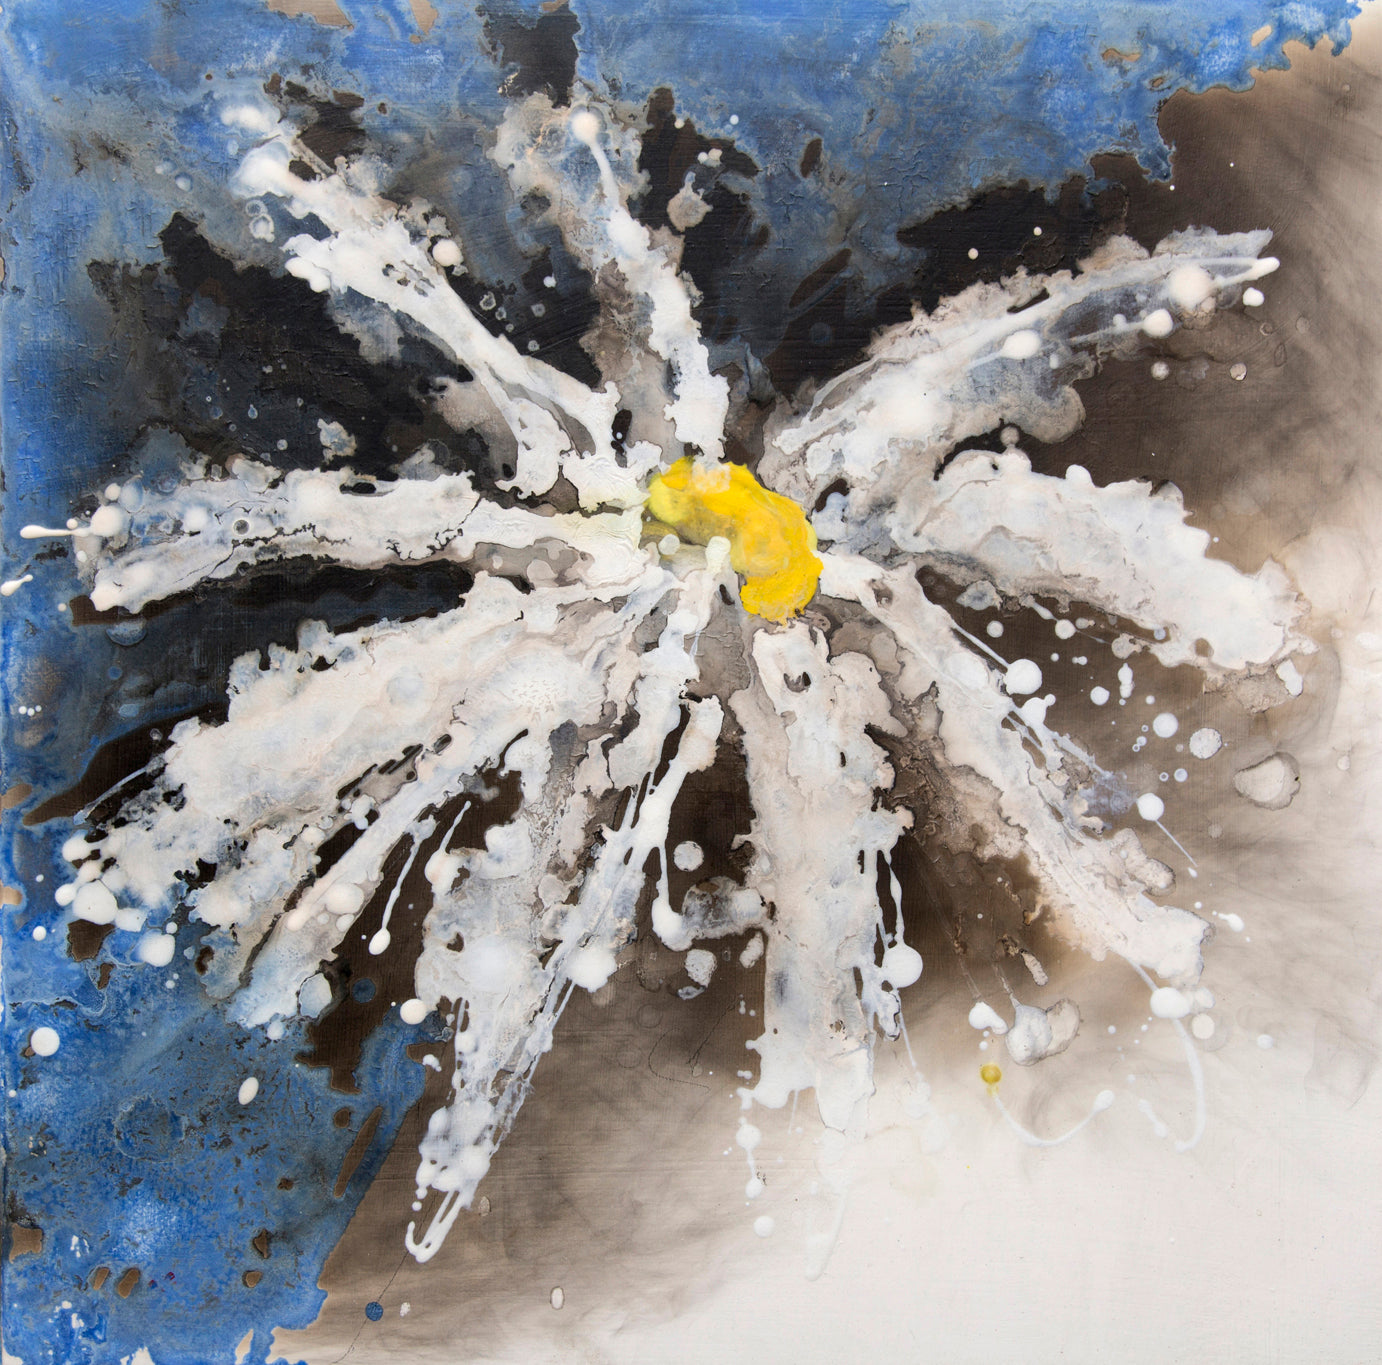 but it was, Royden Astrop, British artist, painter, fire painting, painting with fire, fire daisy, daisy painting, flower painting, blue daisy, oil painting